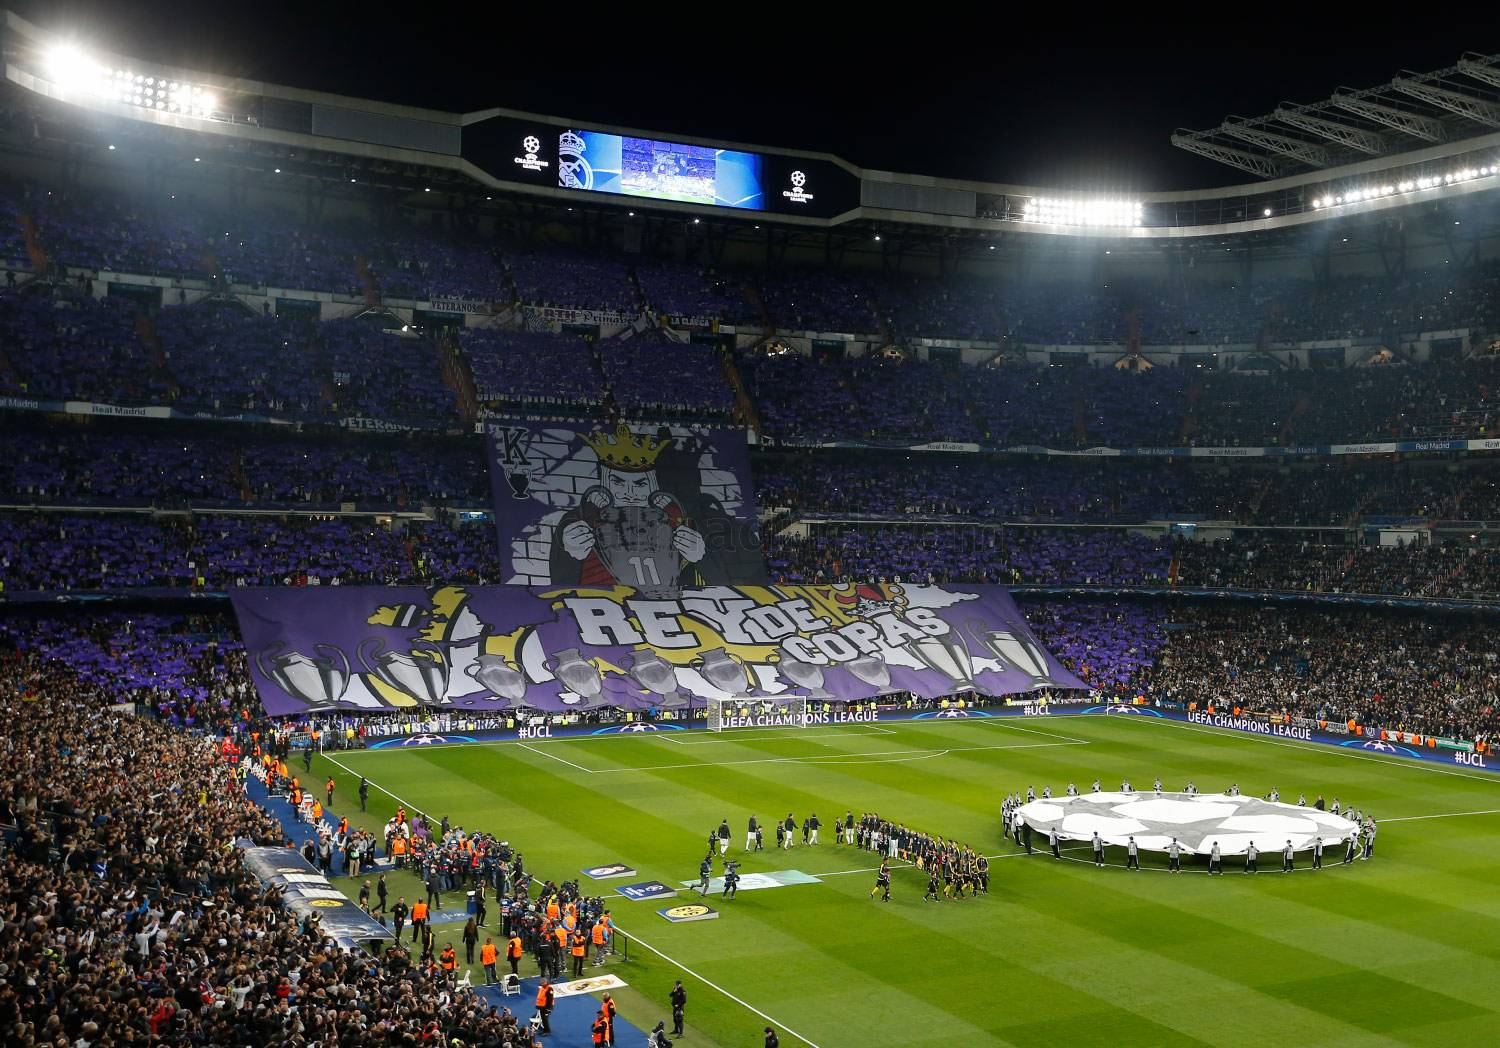 Real Madrid - Real Madrid - Borussia Dortmund - 08-12-2016